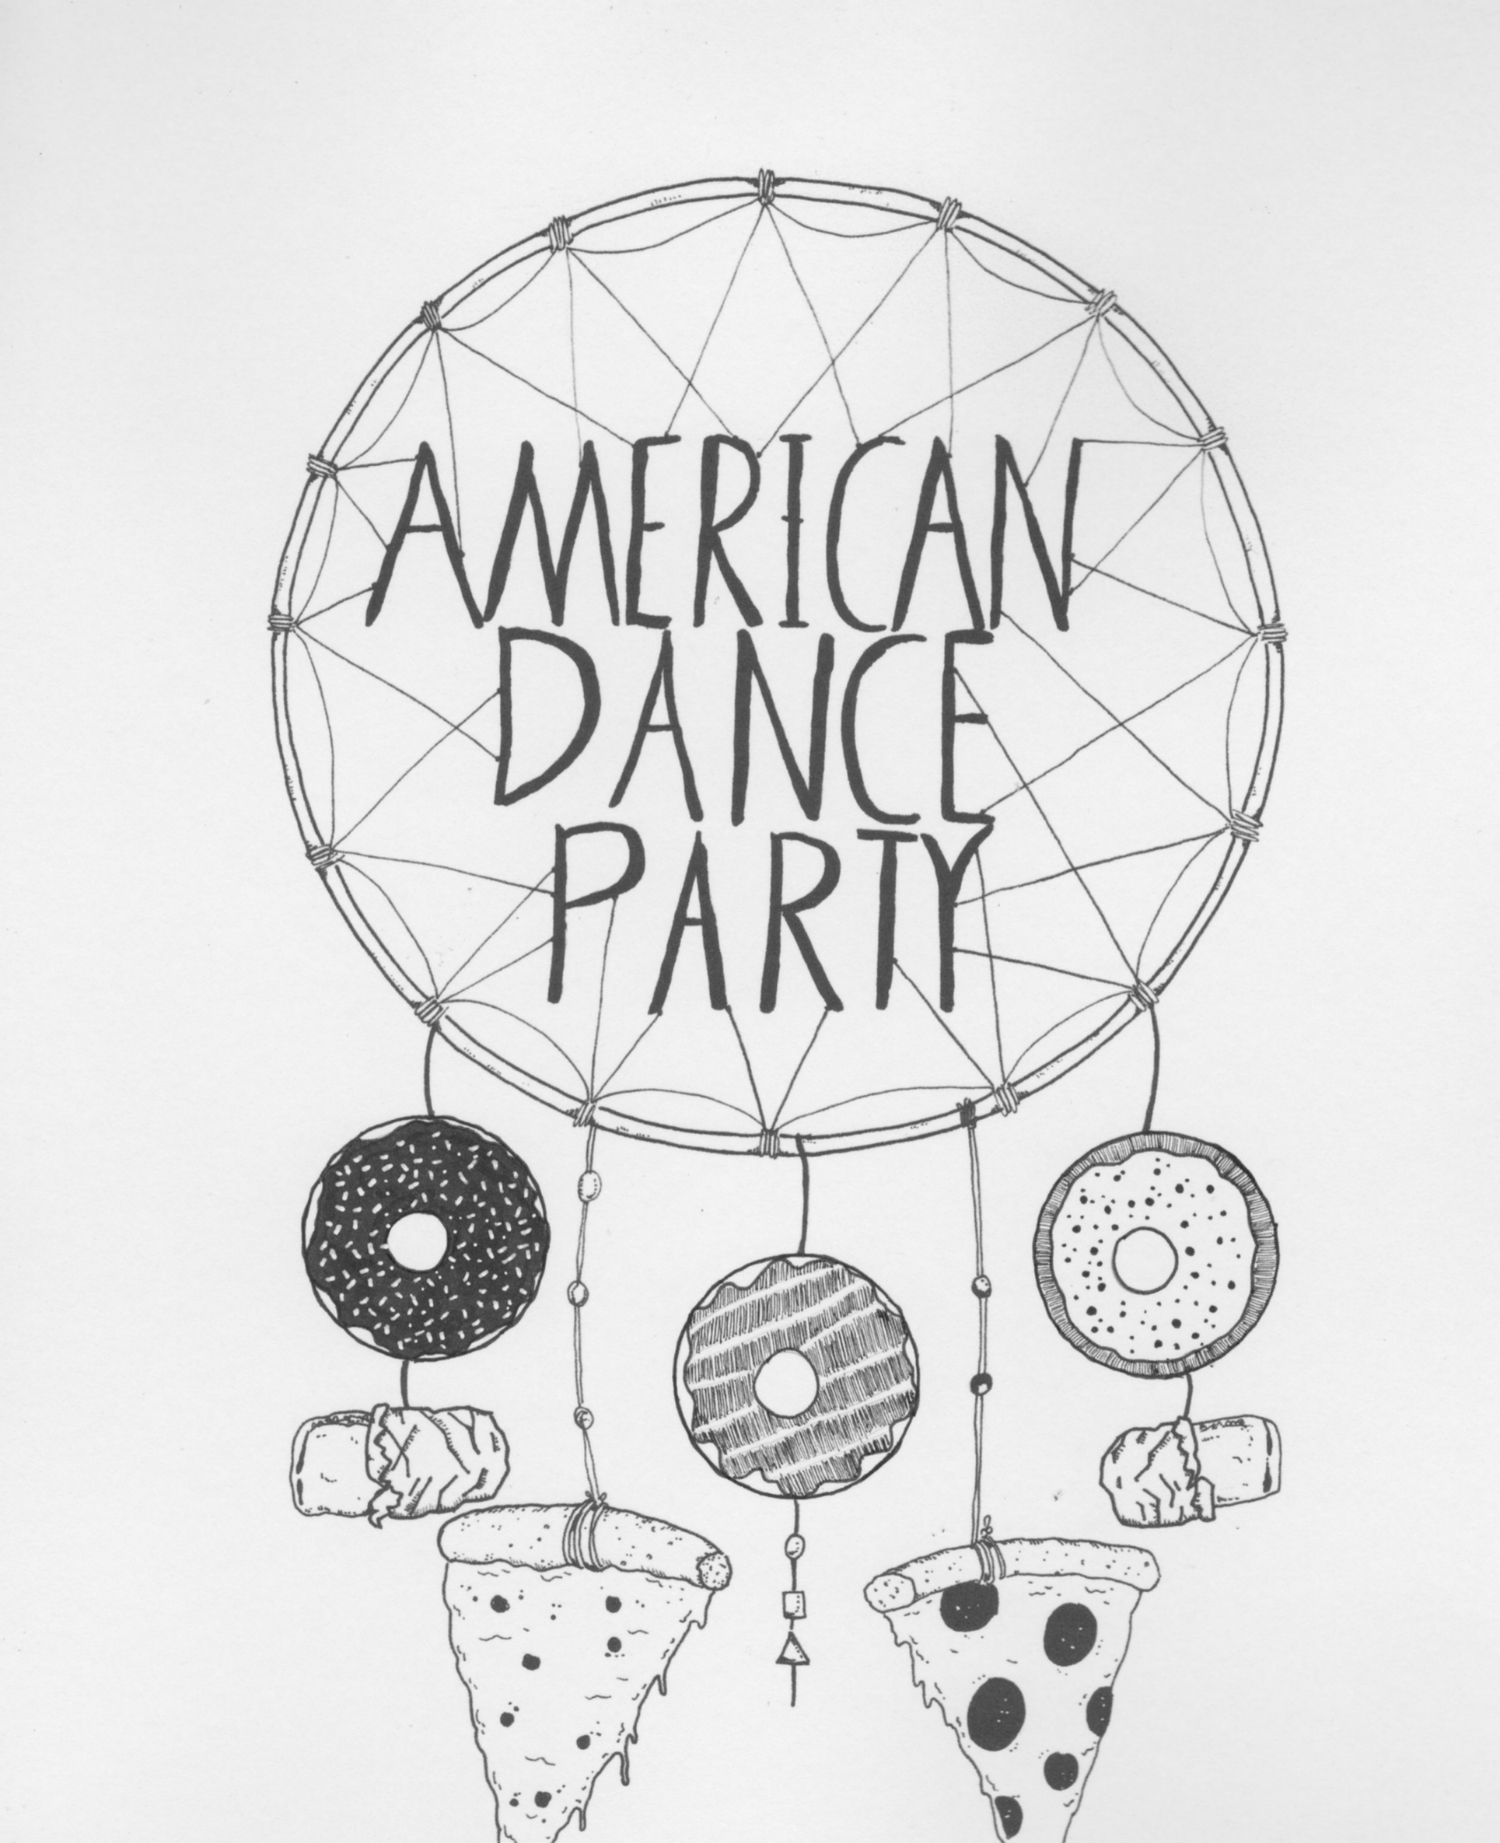 American Dance Party